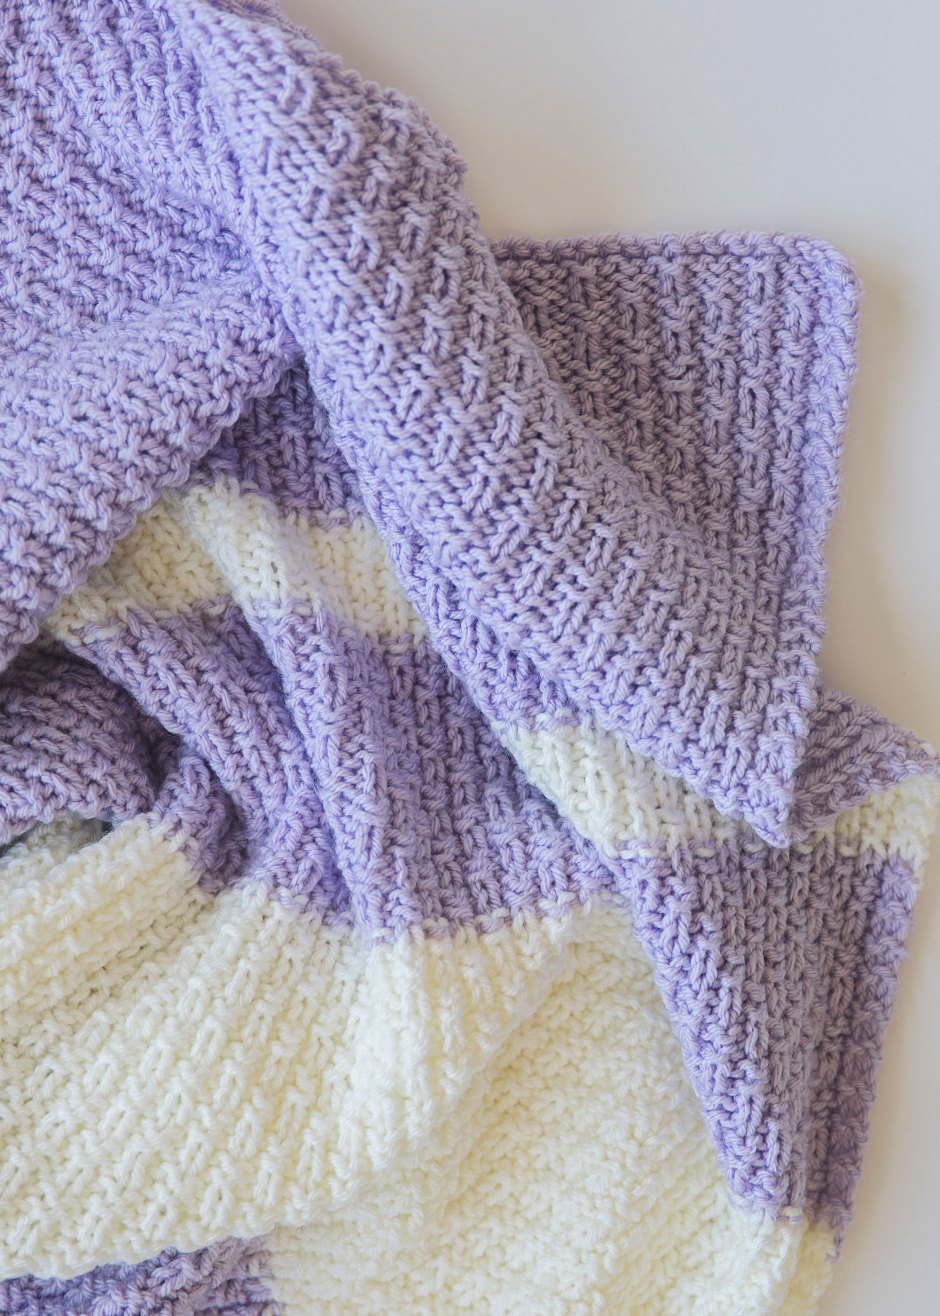 Knitting Pattern For An Easy Baby Blanket : Easy Knit Baby Blanket Pattern - Leelee KnitsLeelee Knits